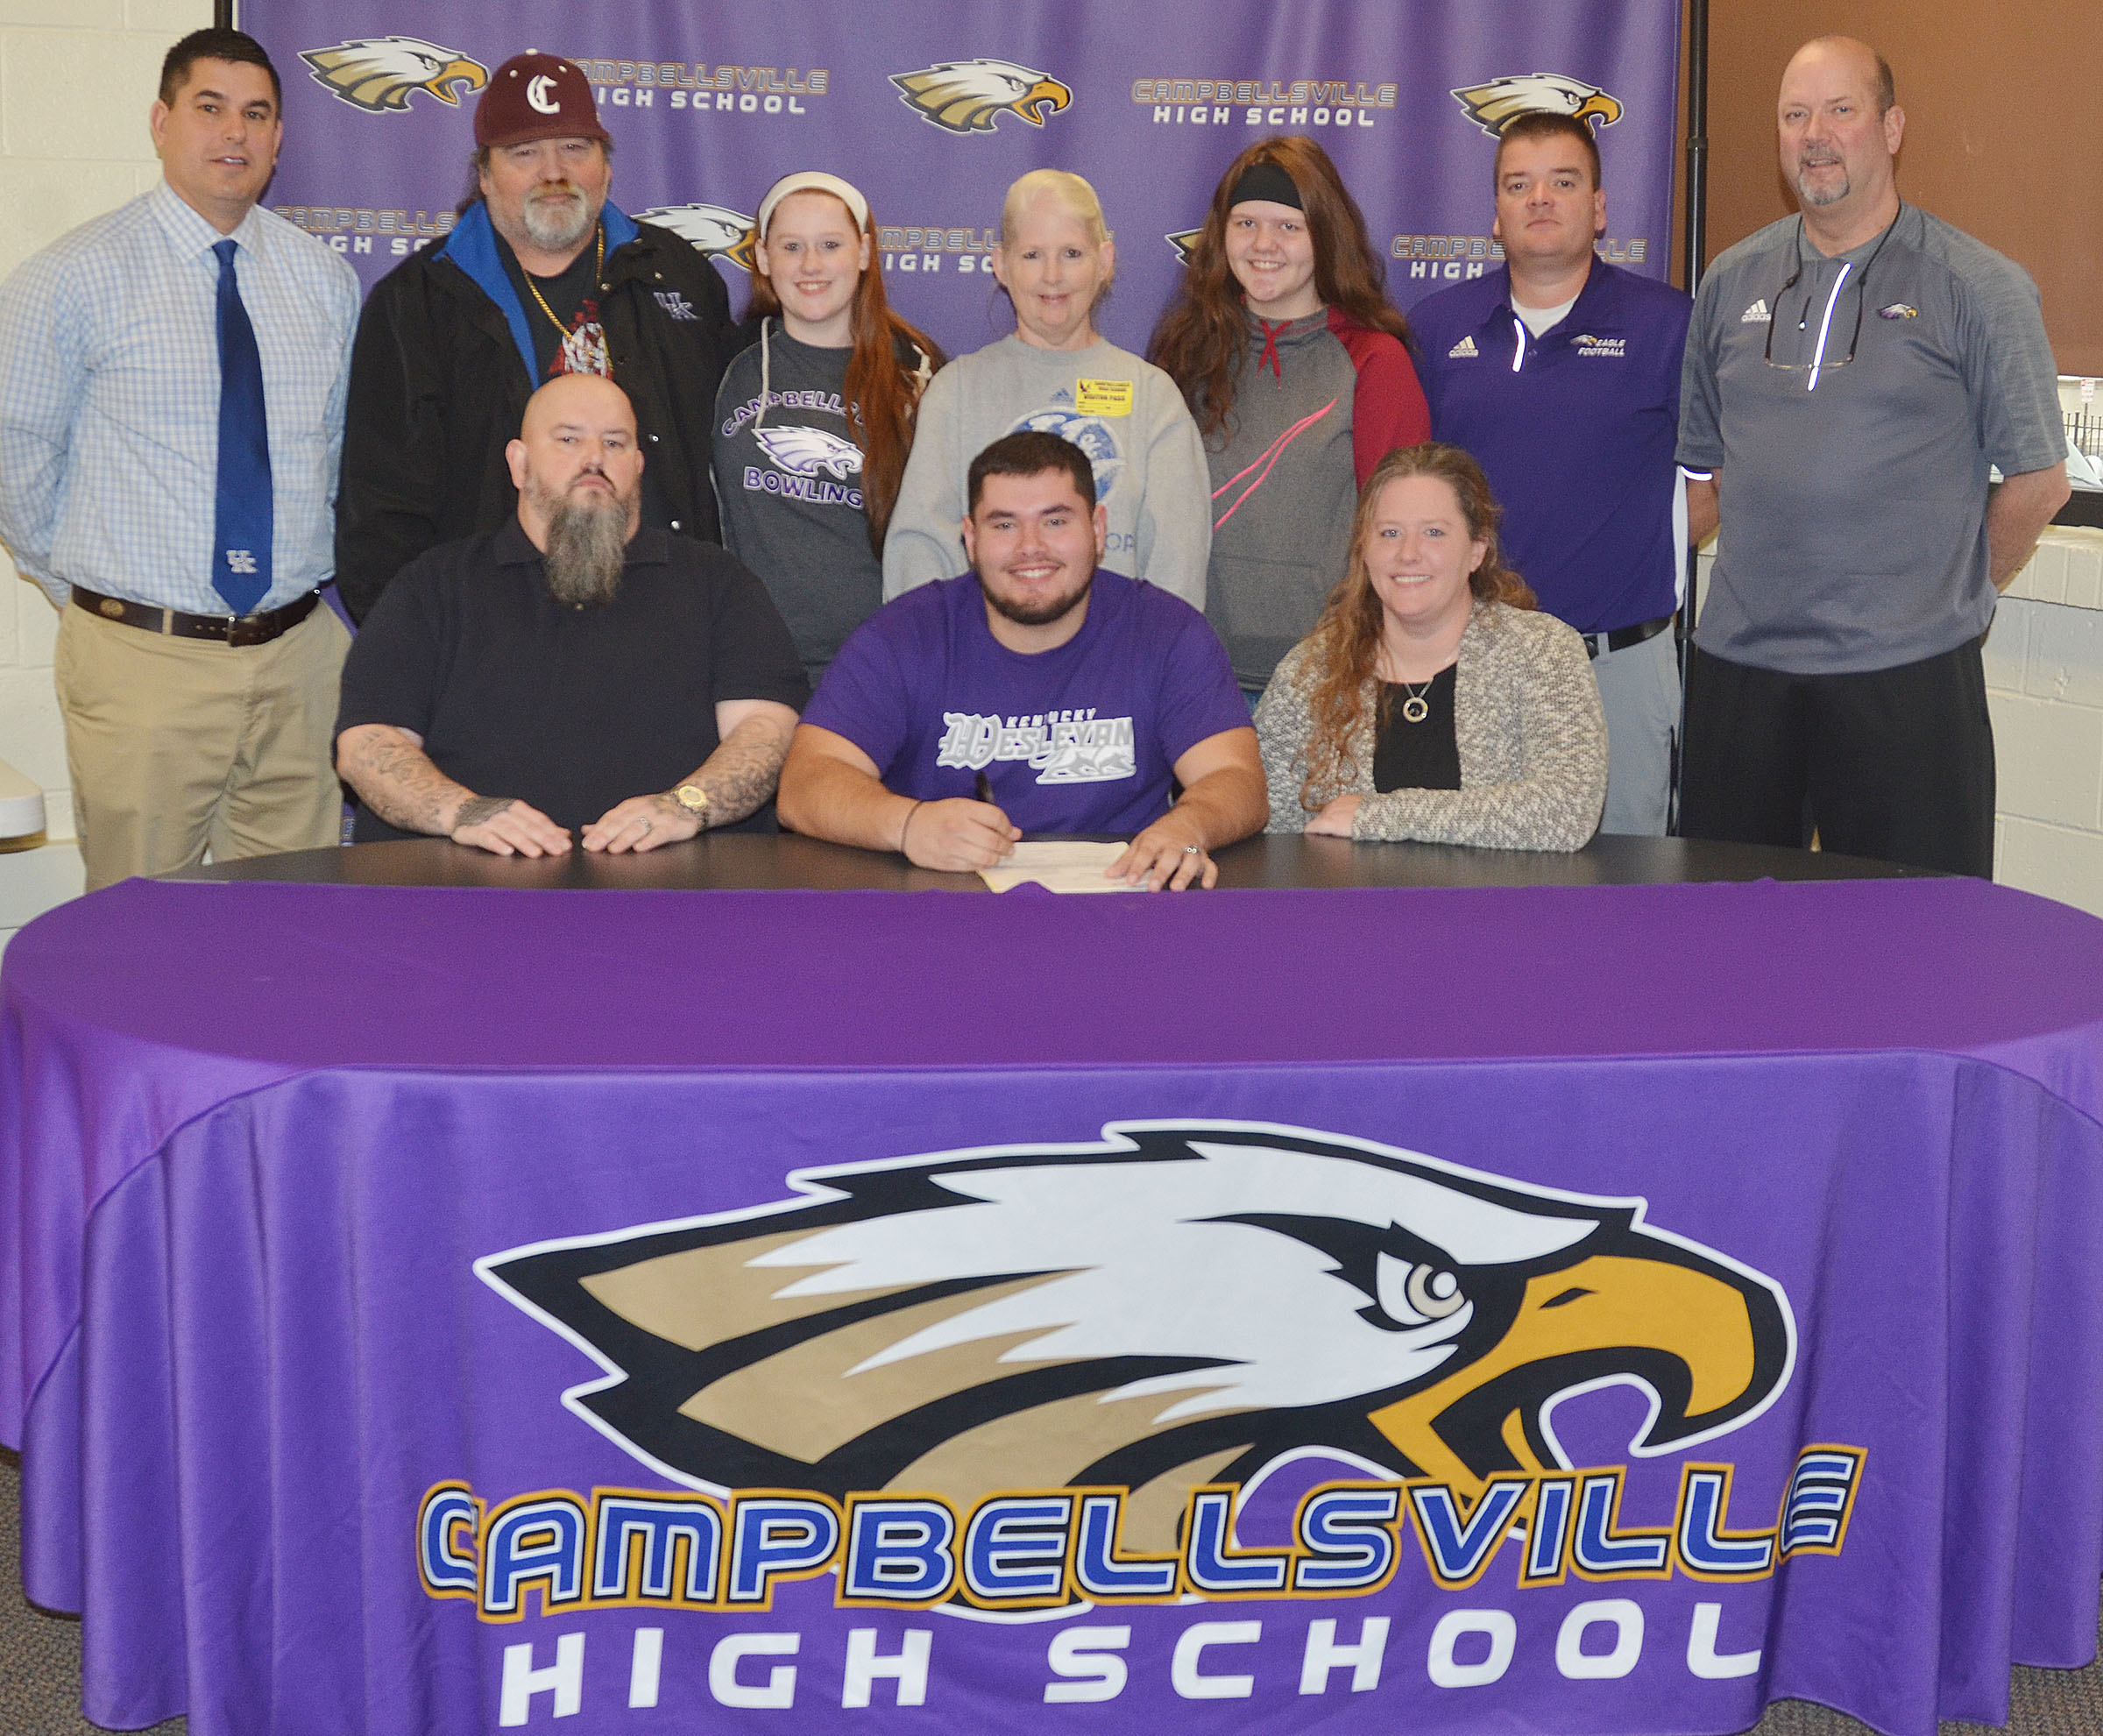 Campbellsville High School football player Logan Brown will continue his academic and football career at Kentucky Wesleyan College this fall. He officially signed his letter of intent on Wednesday, Feb. 1, which was National Signing Day. From left, front, are stepfather Johnny Welch, Logan, and his mother, Krissy Welch. Back, CHS Principal Kirby Smith, grandfather Joe Pendleton, sister and CHS sophomore Gracie Miller, grandmother Kim Pendleton, sister and Campbellsville Middle School seventh-grader Autumn Brown, CHS head football coach Dale Estes and CHS Athletic Director Tim Davis.